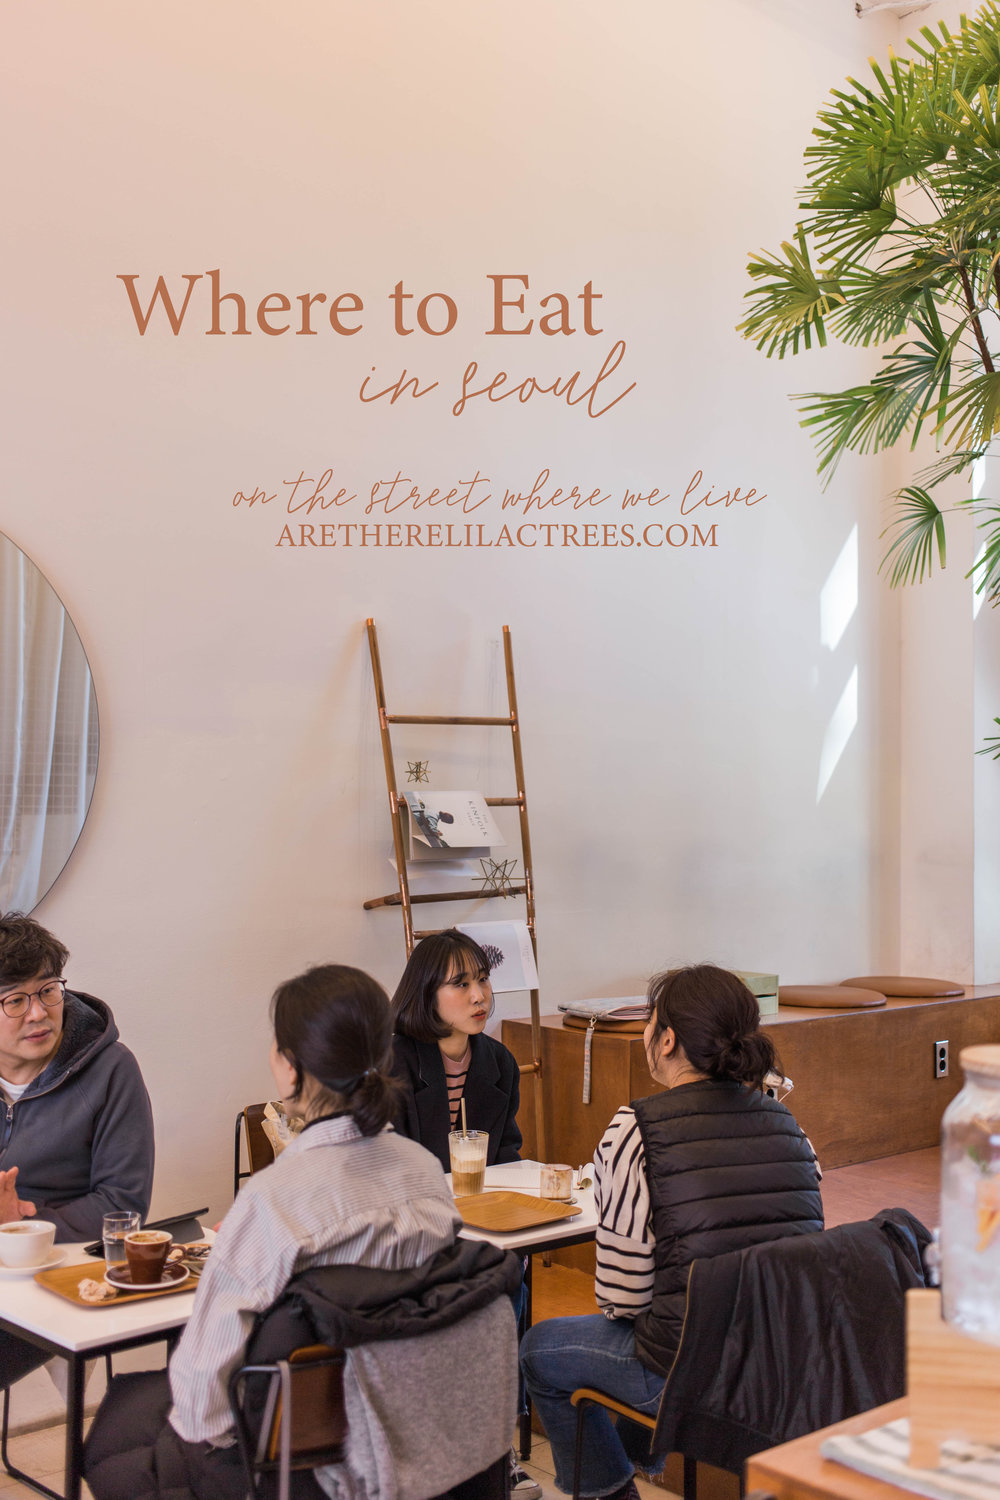 Where to Eat in Seoul | On the Street Where We Live (aretherelilactrees.com)